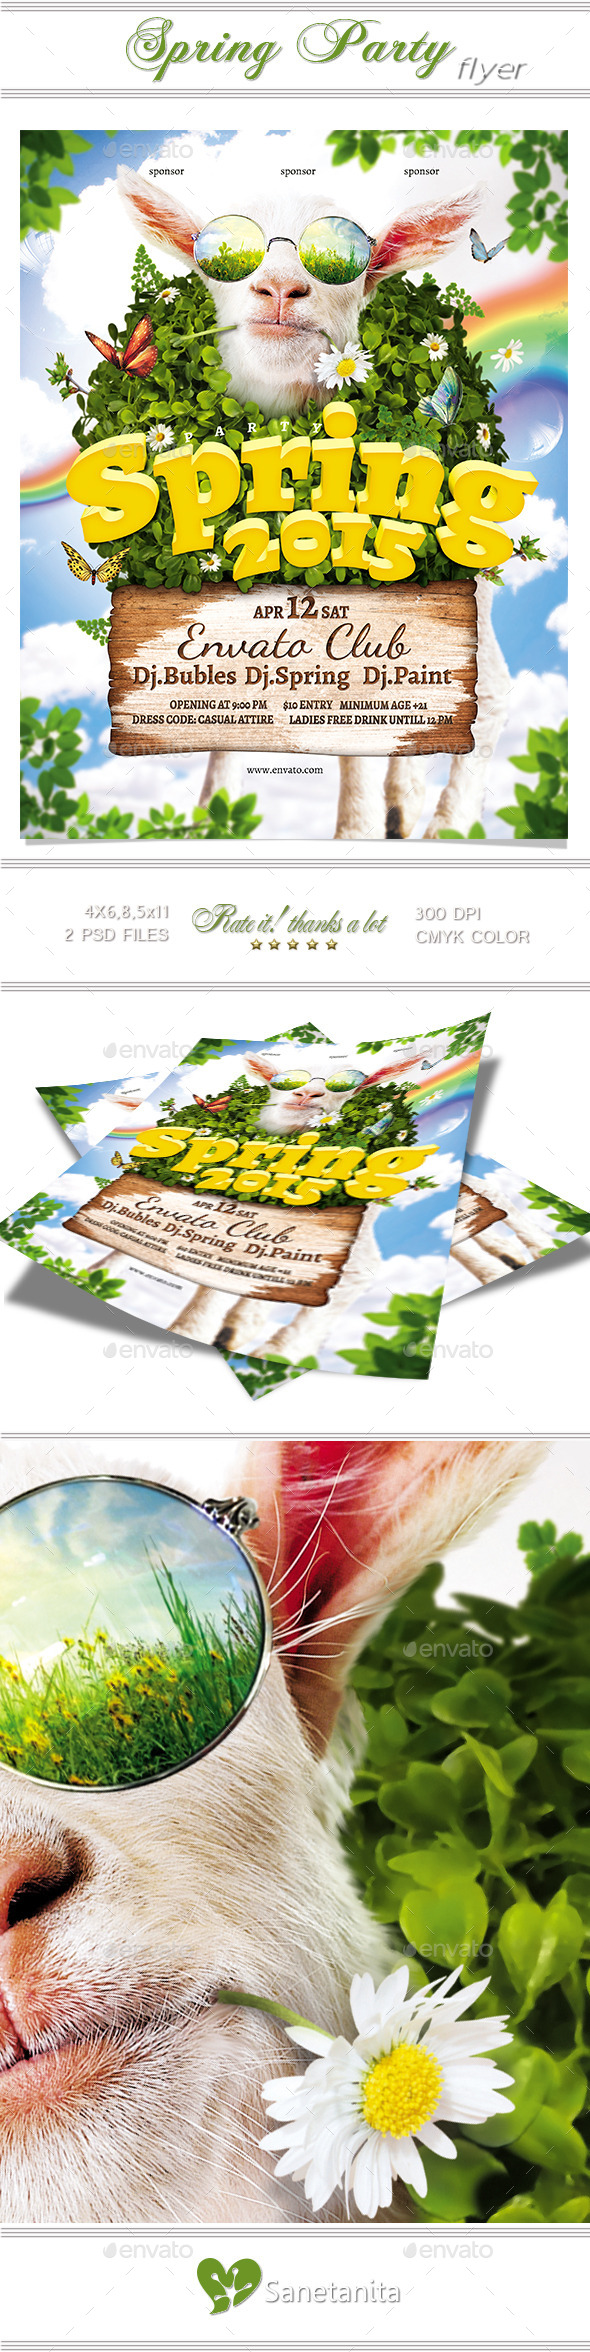 GraphicRiver Spring Party Flyer 2 10660711